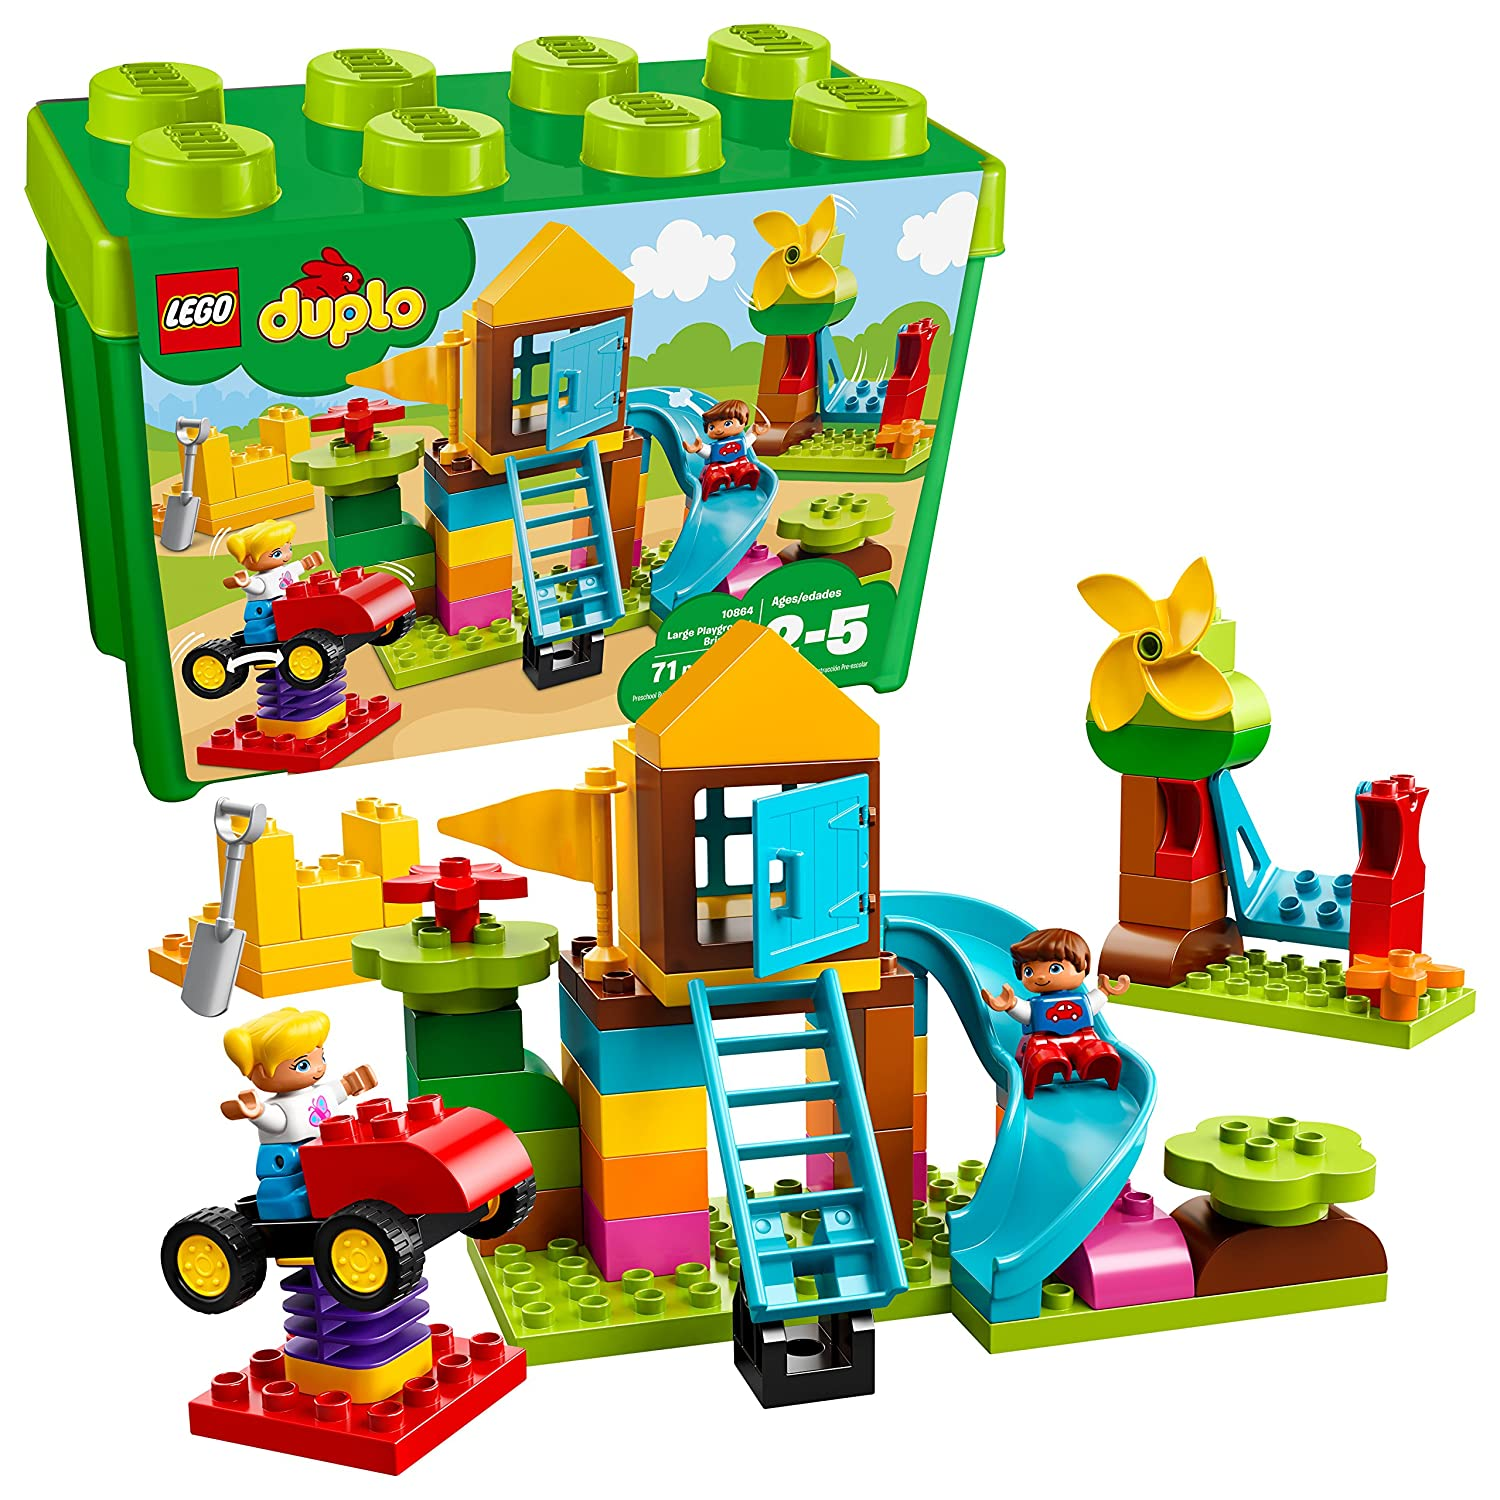 Top 9 Best Lego Duplo Sets Reviews in 2020 2